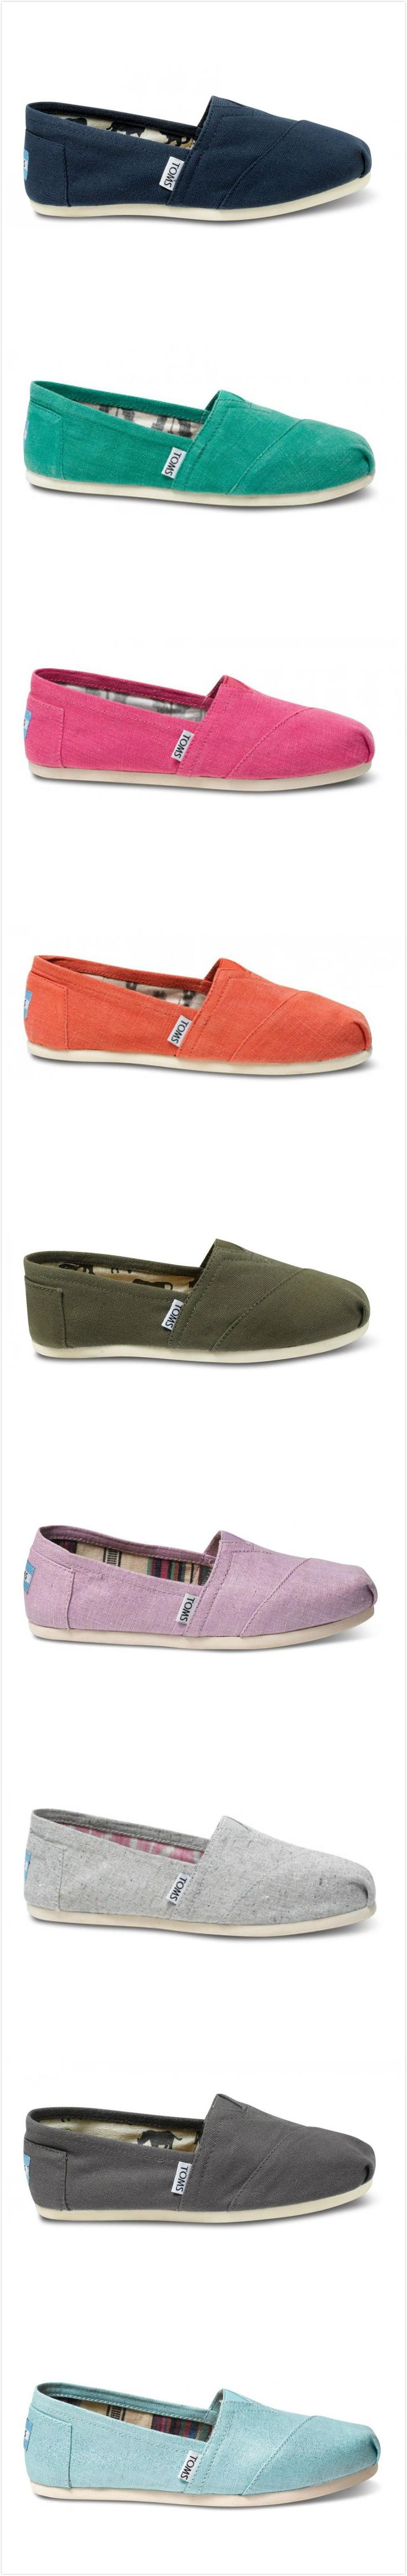 TOMS Shoes Outlet…$19.99!